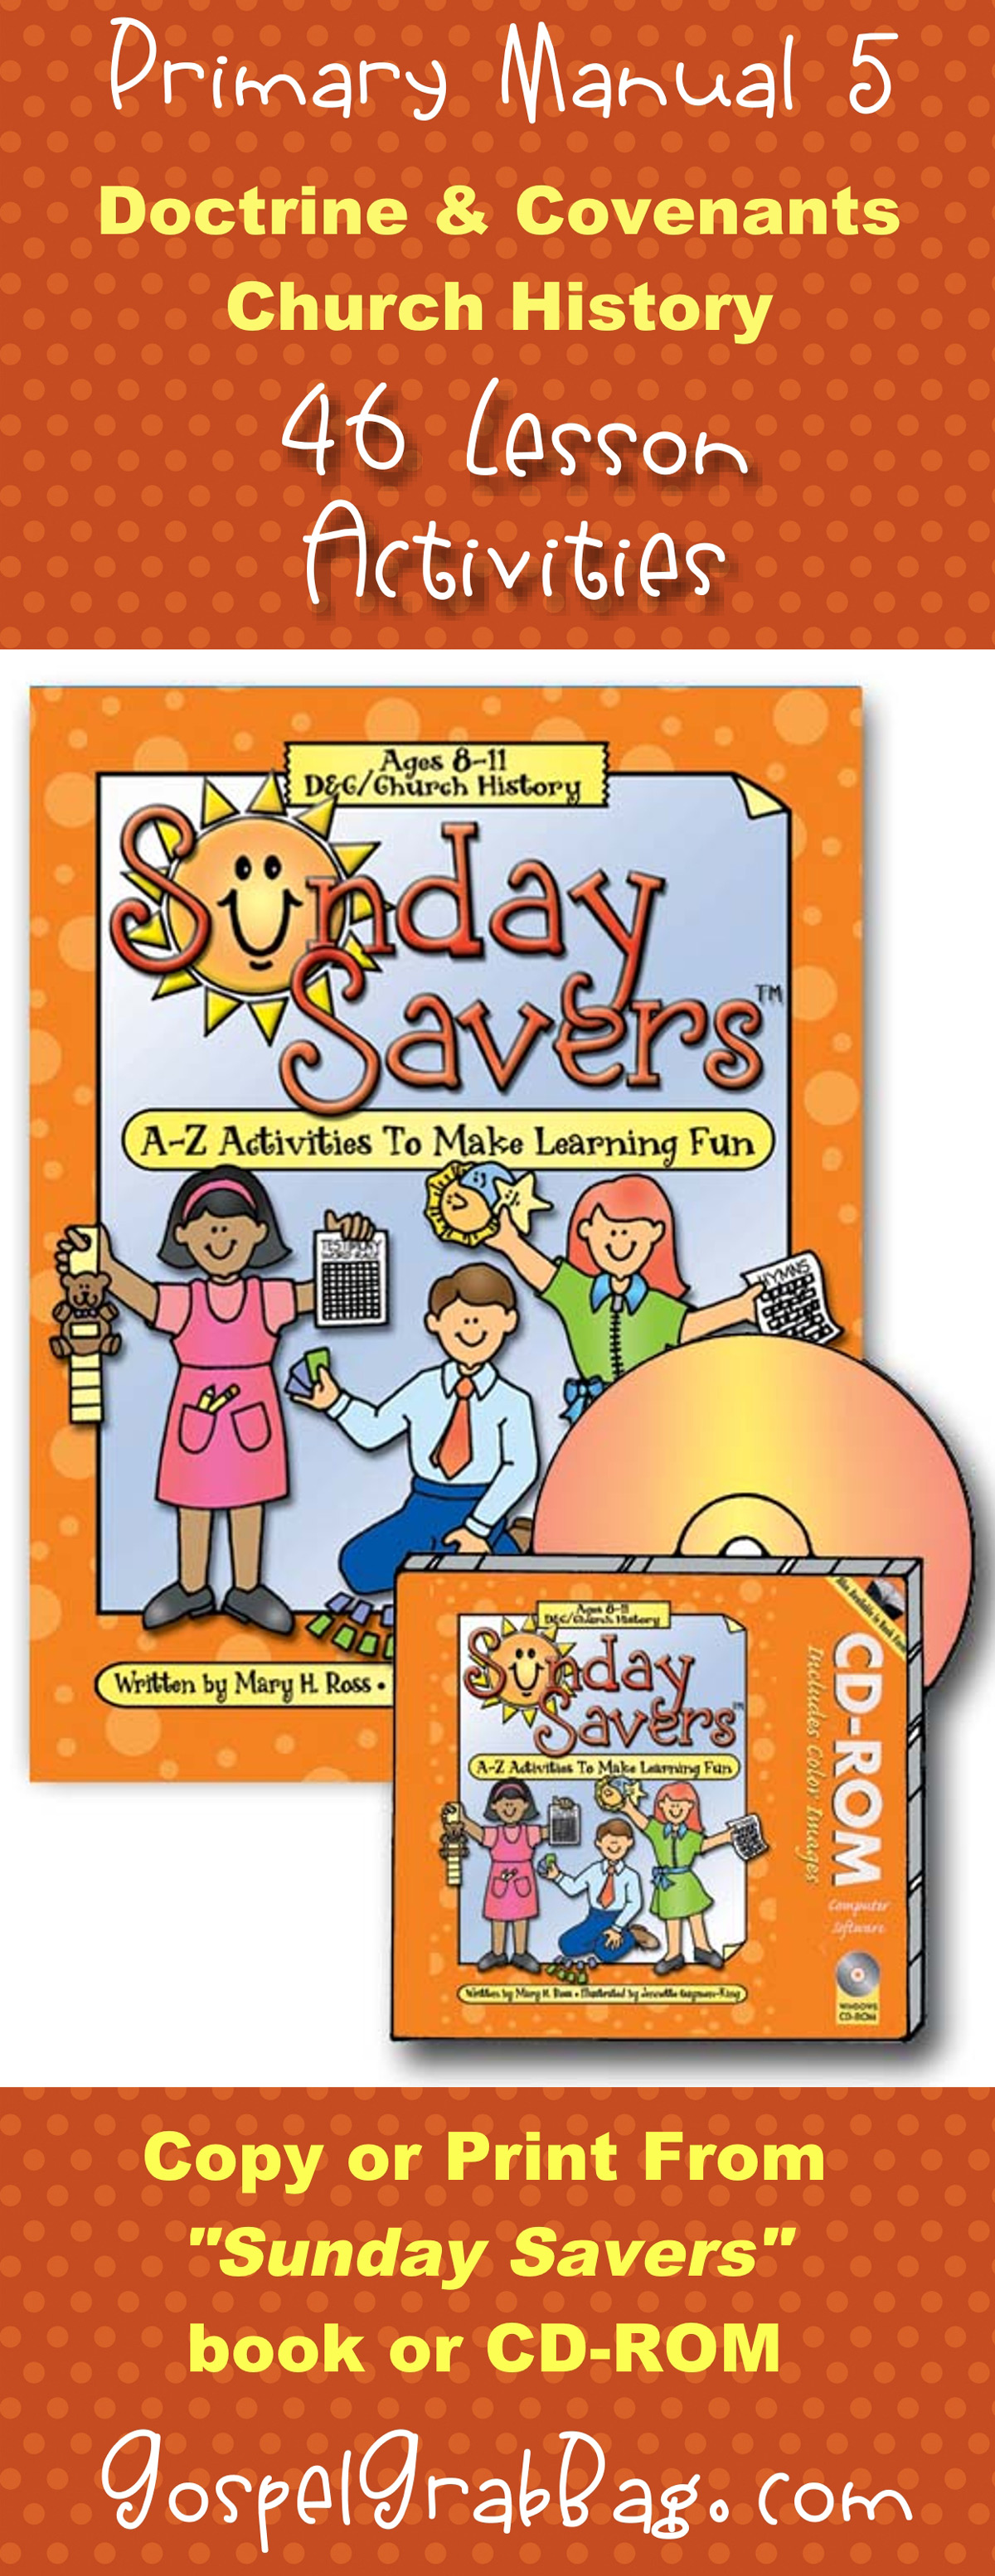 SUNDAY SAVER book and CD-ROM, Doctrine and Covenants and Church History, A-Z Activities to Make Learning Fun, By Mary H. Ross and Jennette Guymon-King, GospelGrabBag.com